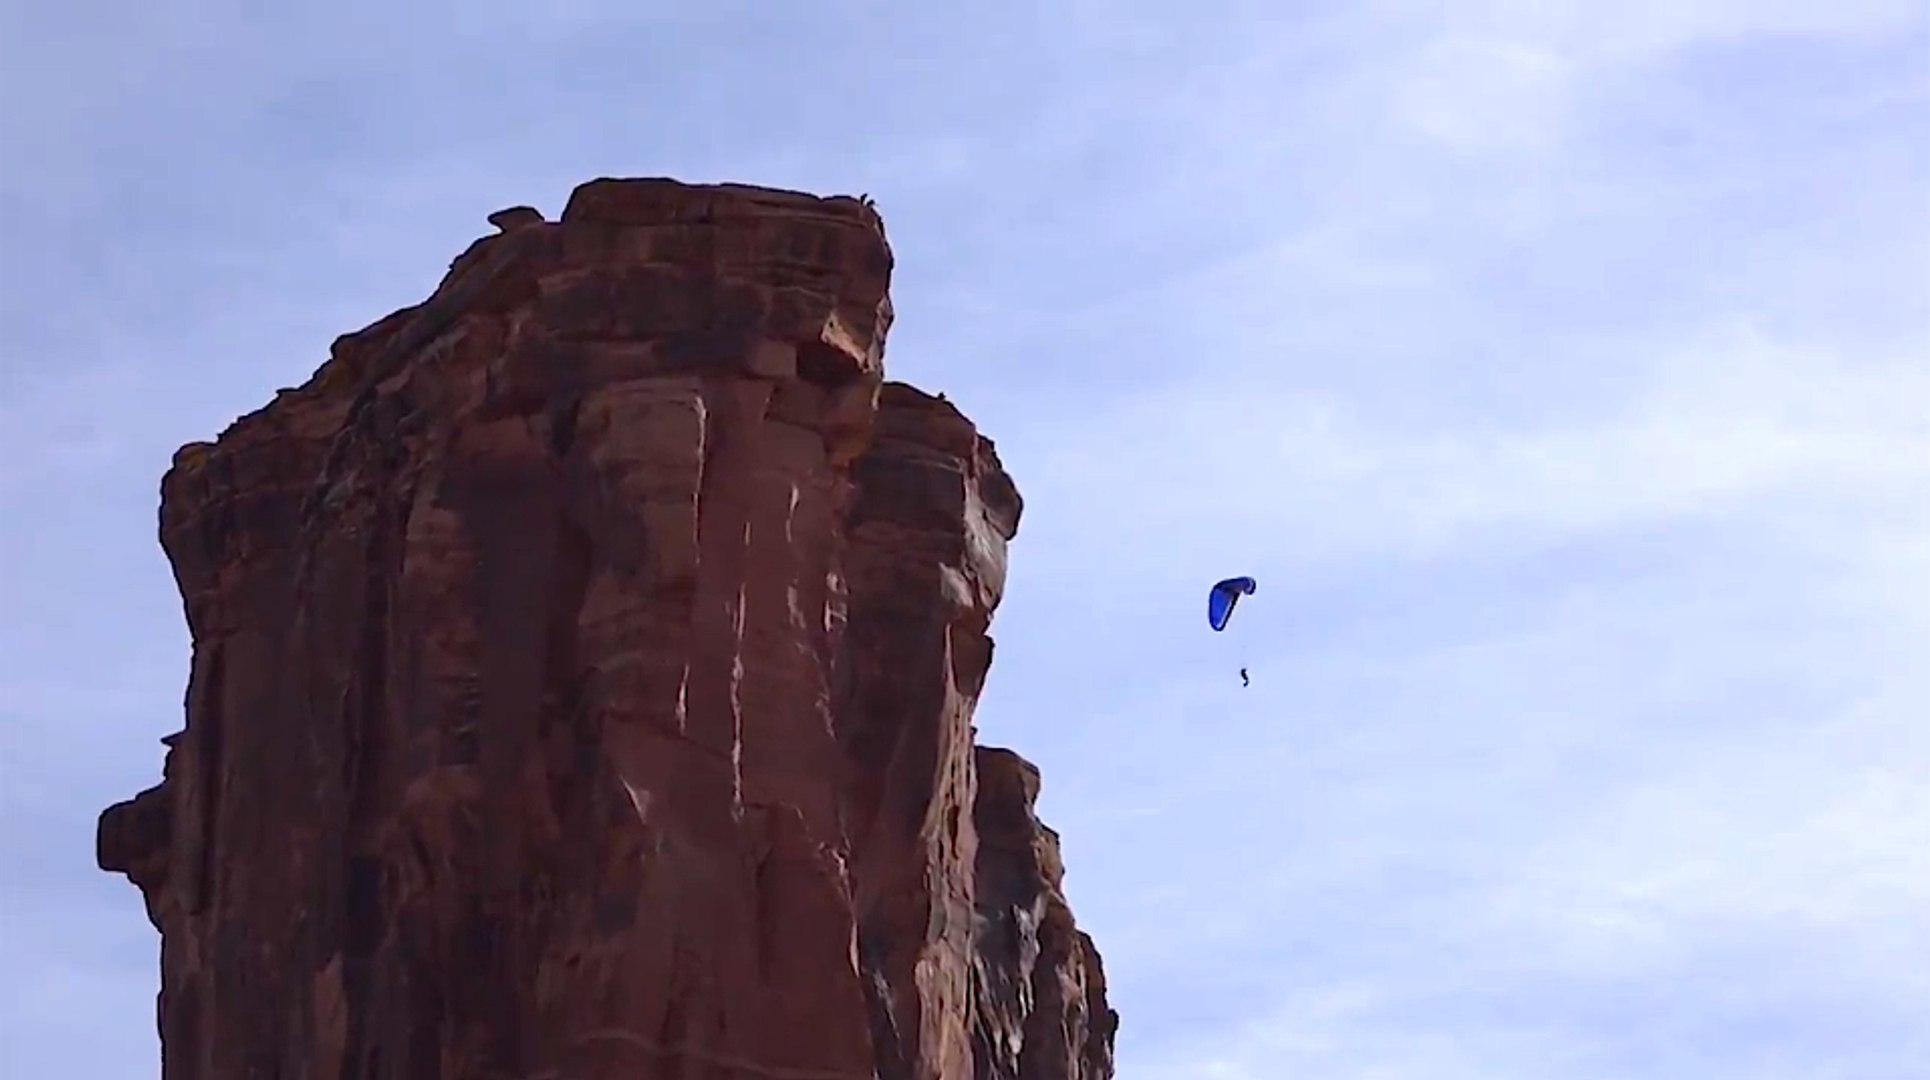 FIRST EVER BASE JUMP With 28m Velocity Paraglider From a Cliff in Moab Utah!